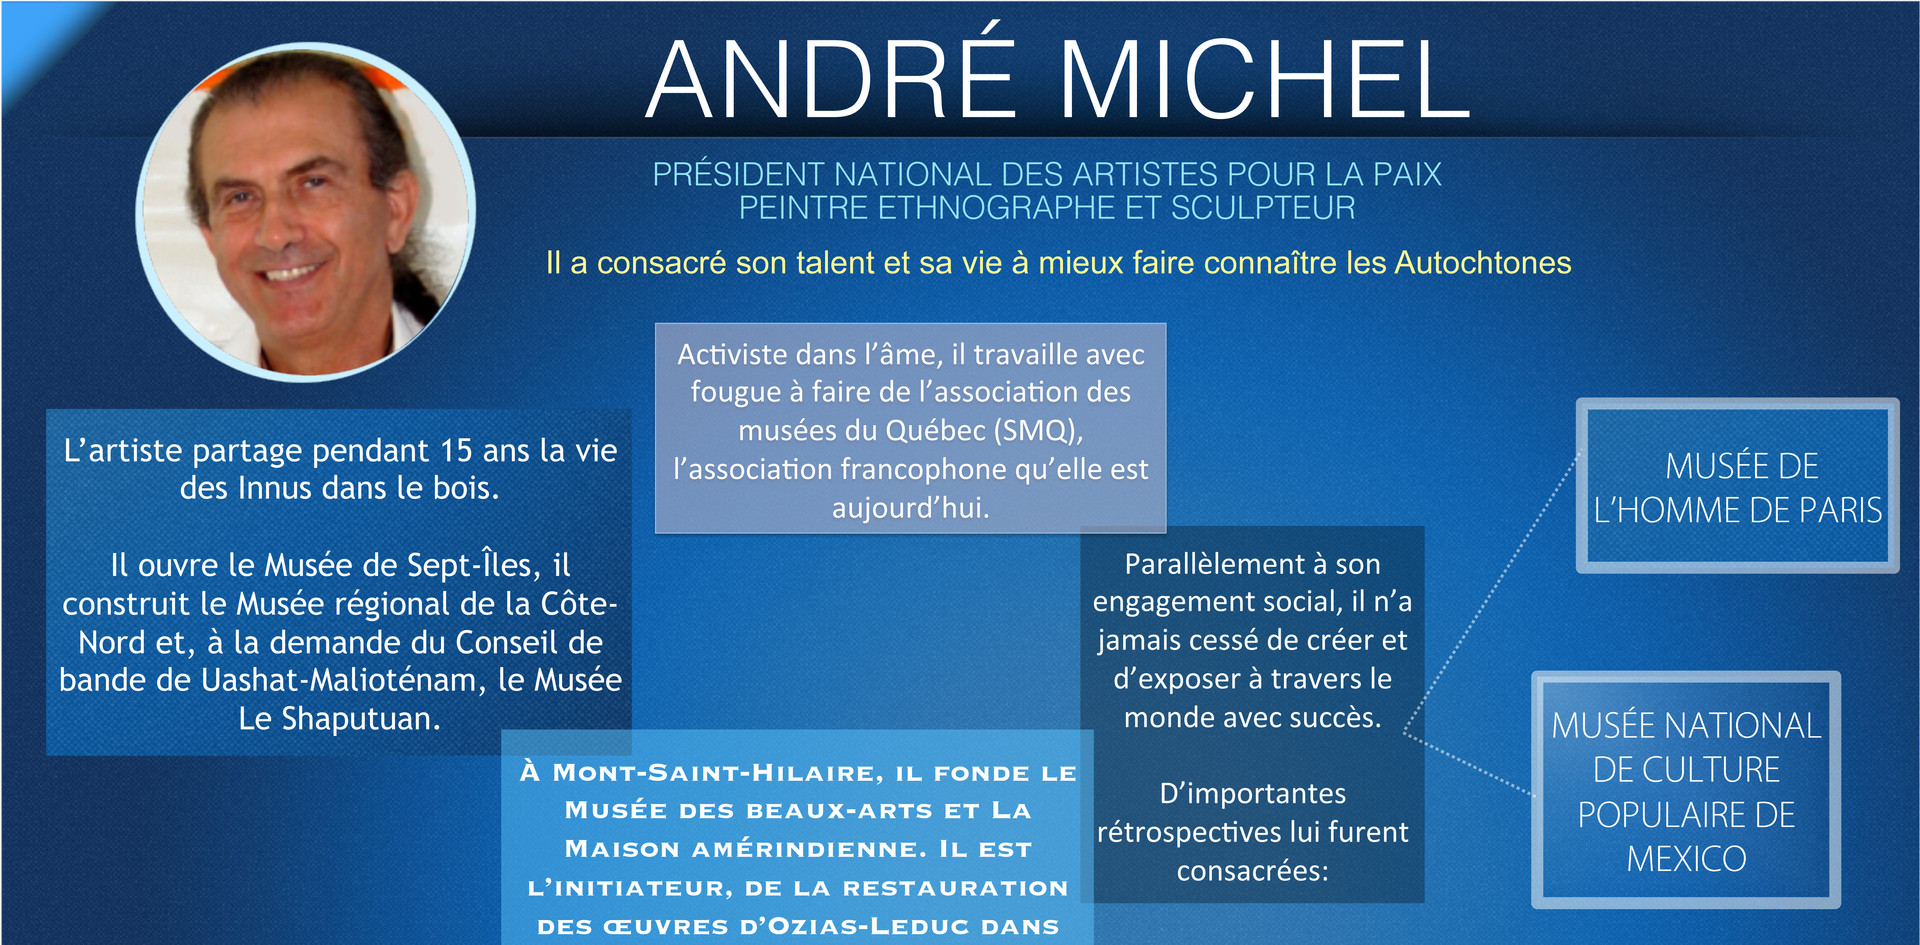 Andre Michel